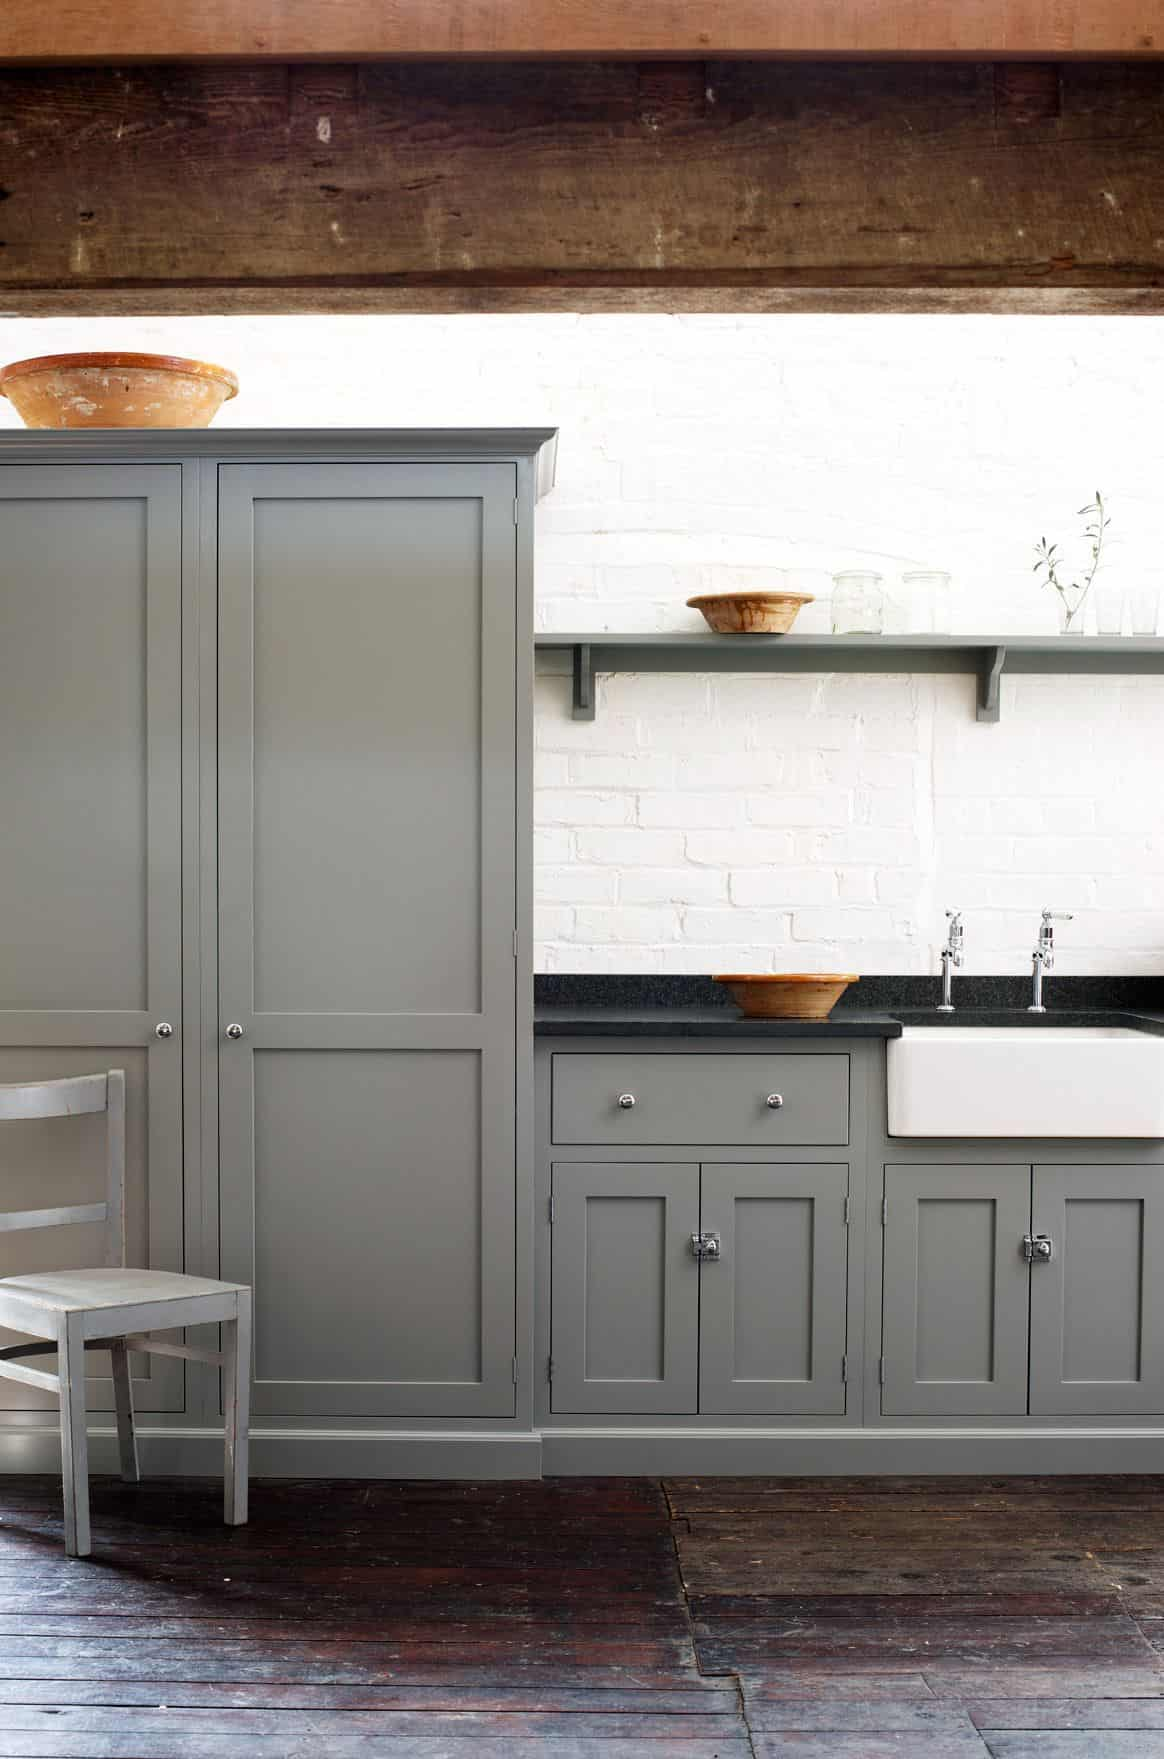 Gray Shaker Kitchen With Shelf deVol Kitchen